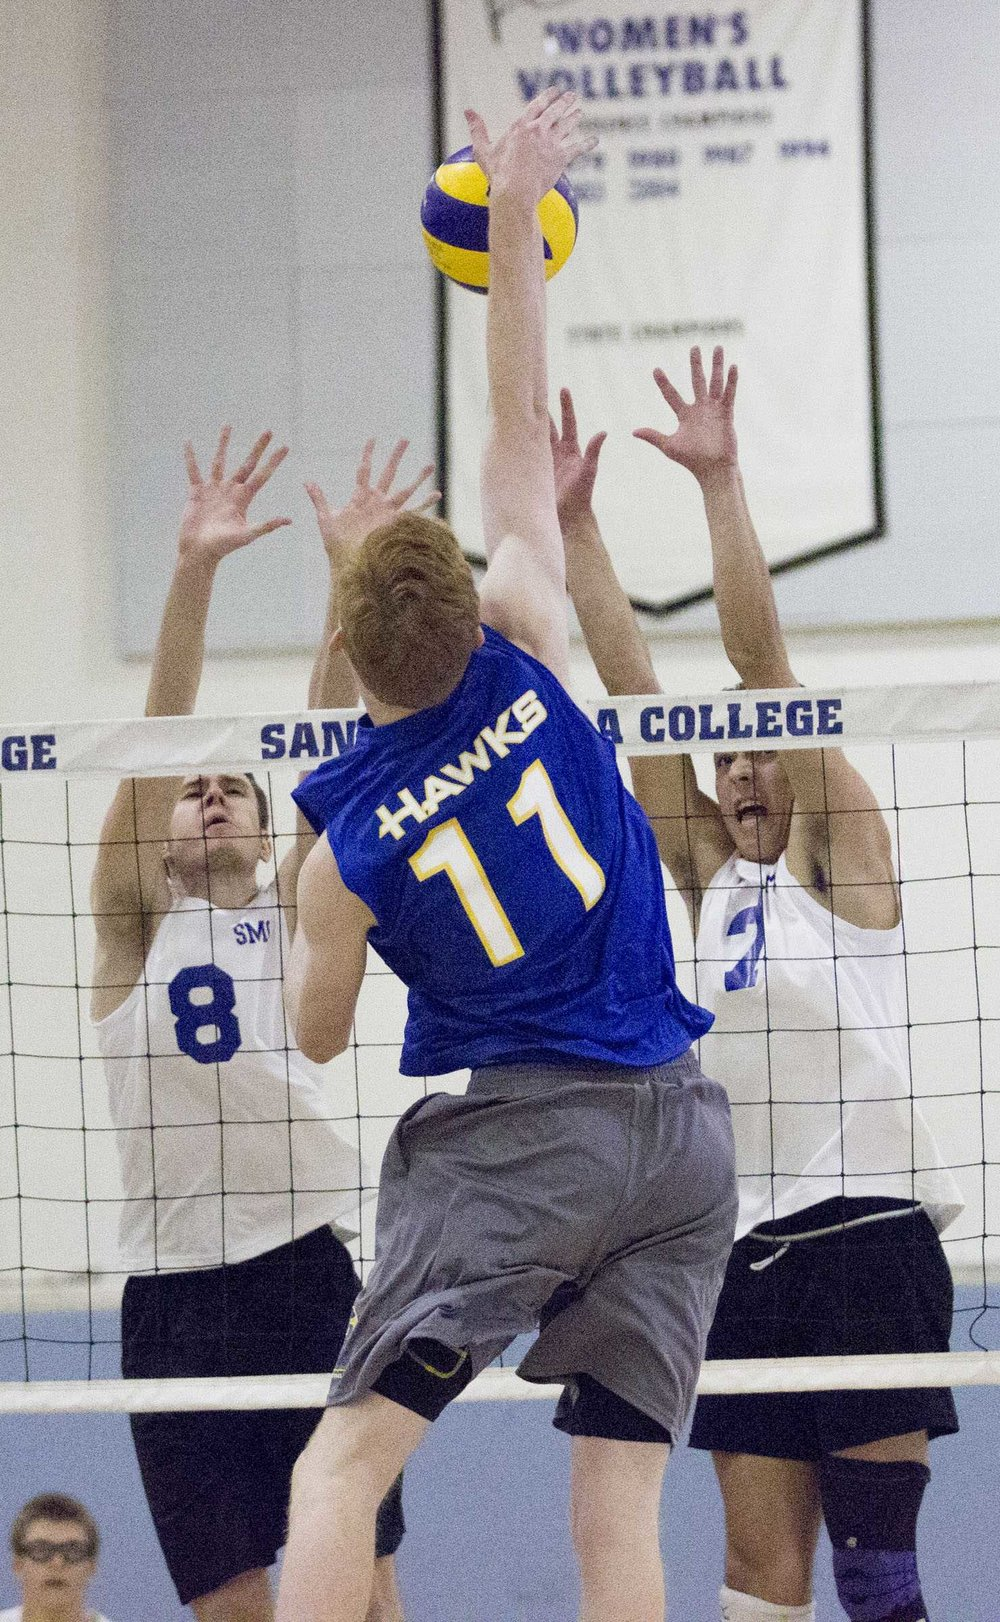 Santiago Canyon College Hawks freshman opposite hitter Andrew Desrochers (11, center) spikes the ball between Santa Monica College Corsairs freshman middle blocker Nick Kotetsky (8, left) and Santa Monica College Corsairs freshman left blocker AJ Peyrot (22, right) at the Santa Monica College gymnasium, in Santa Monica California on March 10, 2017. (Corsair Photo: Zane Meyer-Thornton)